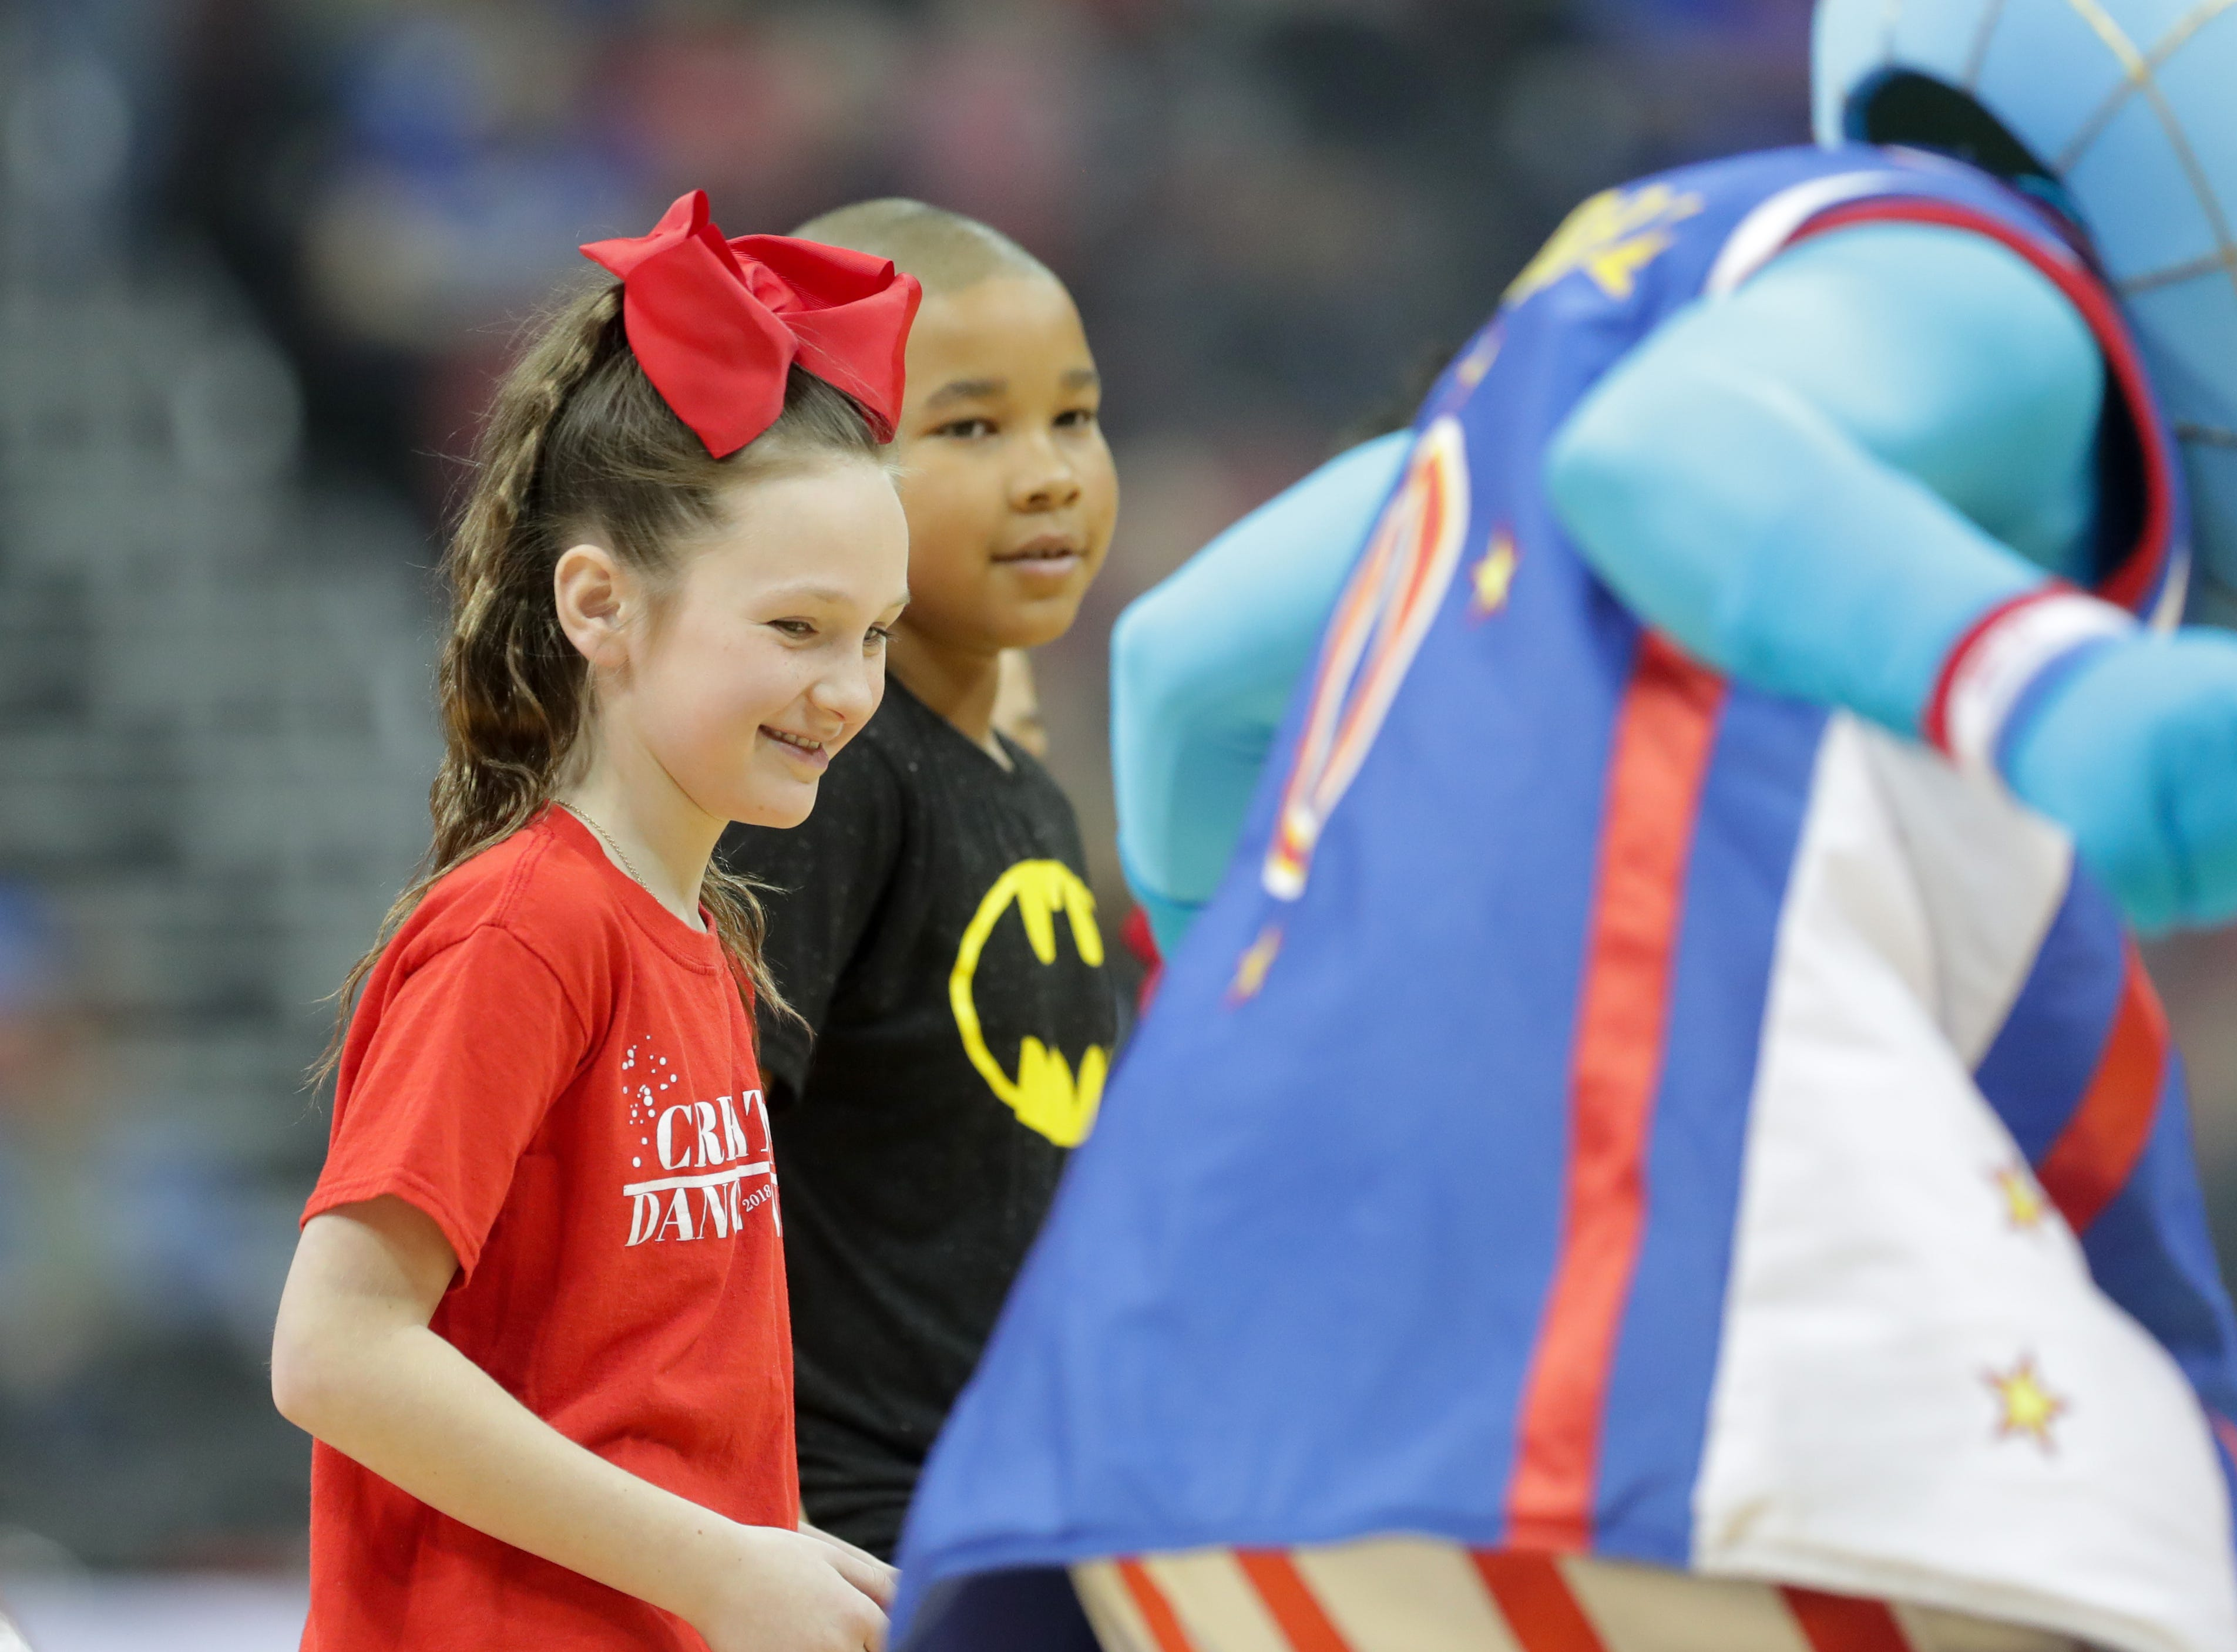 Kids get ready to play musical chairs before the Harlem Globetrotters game began. Jan. 19, 2019